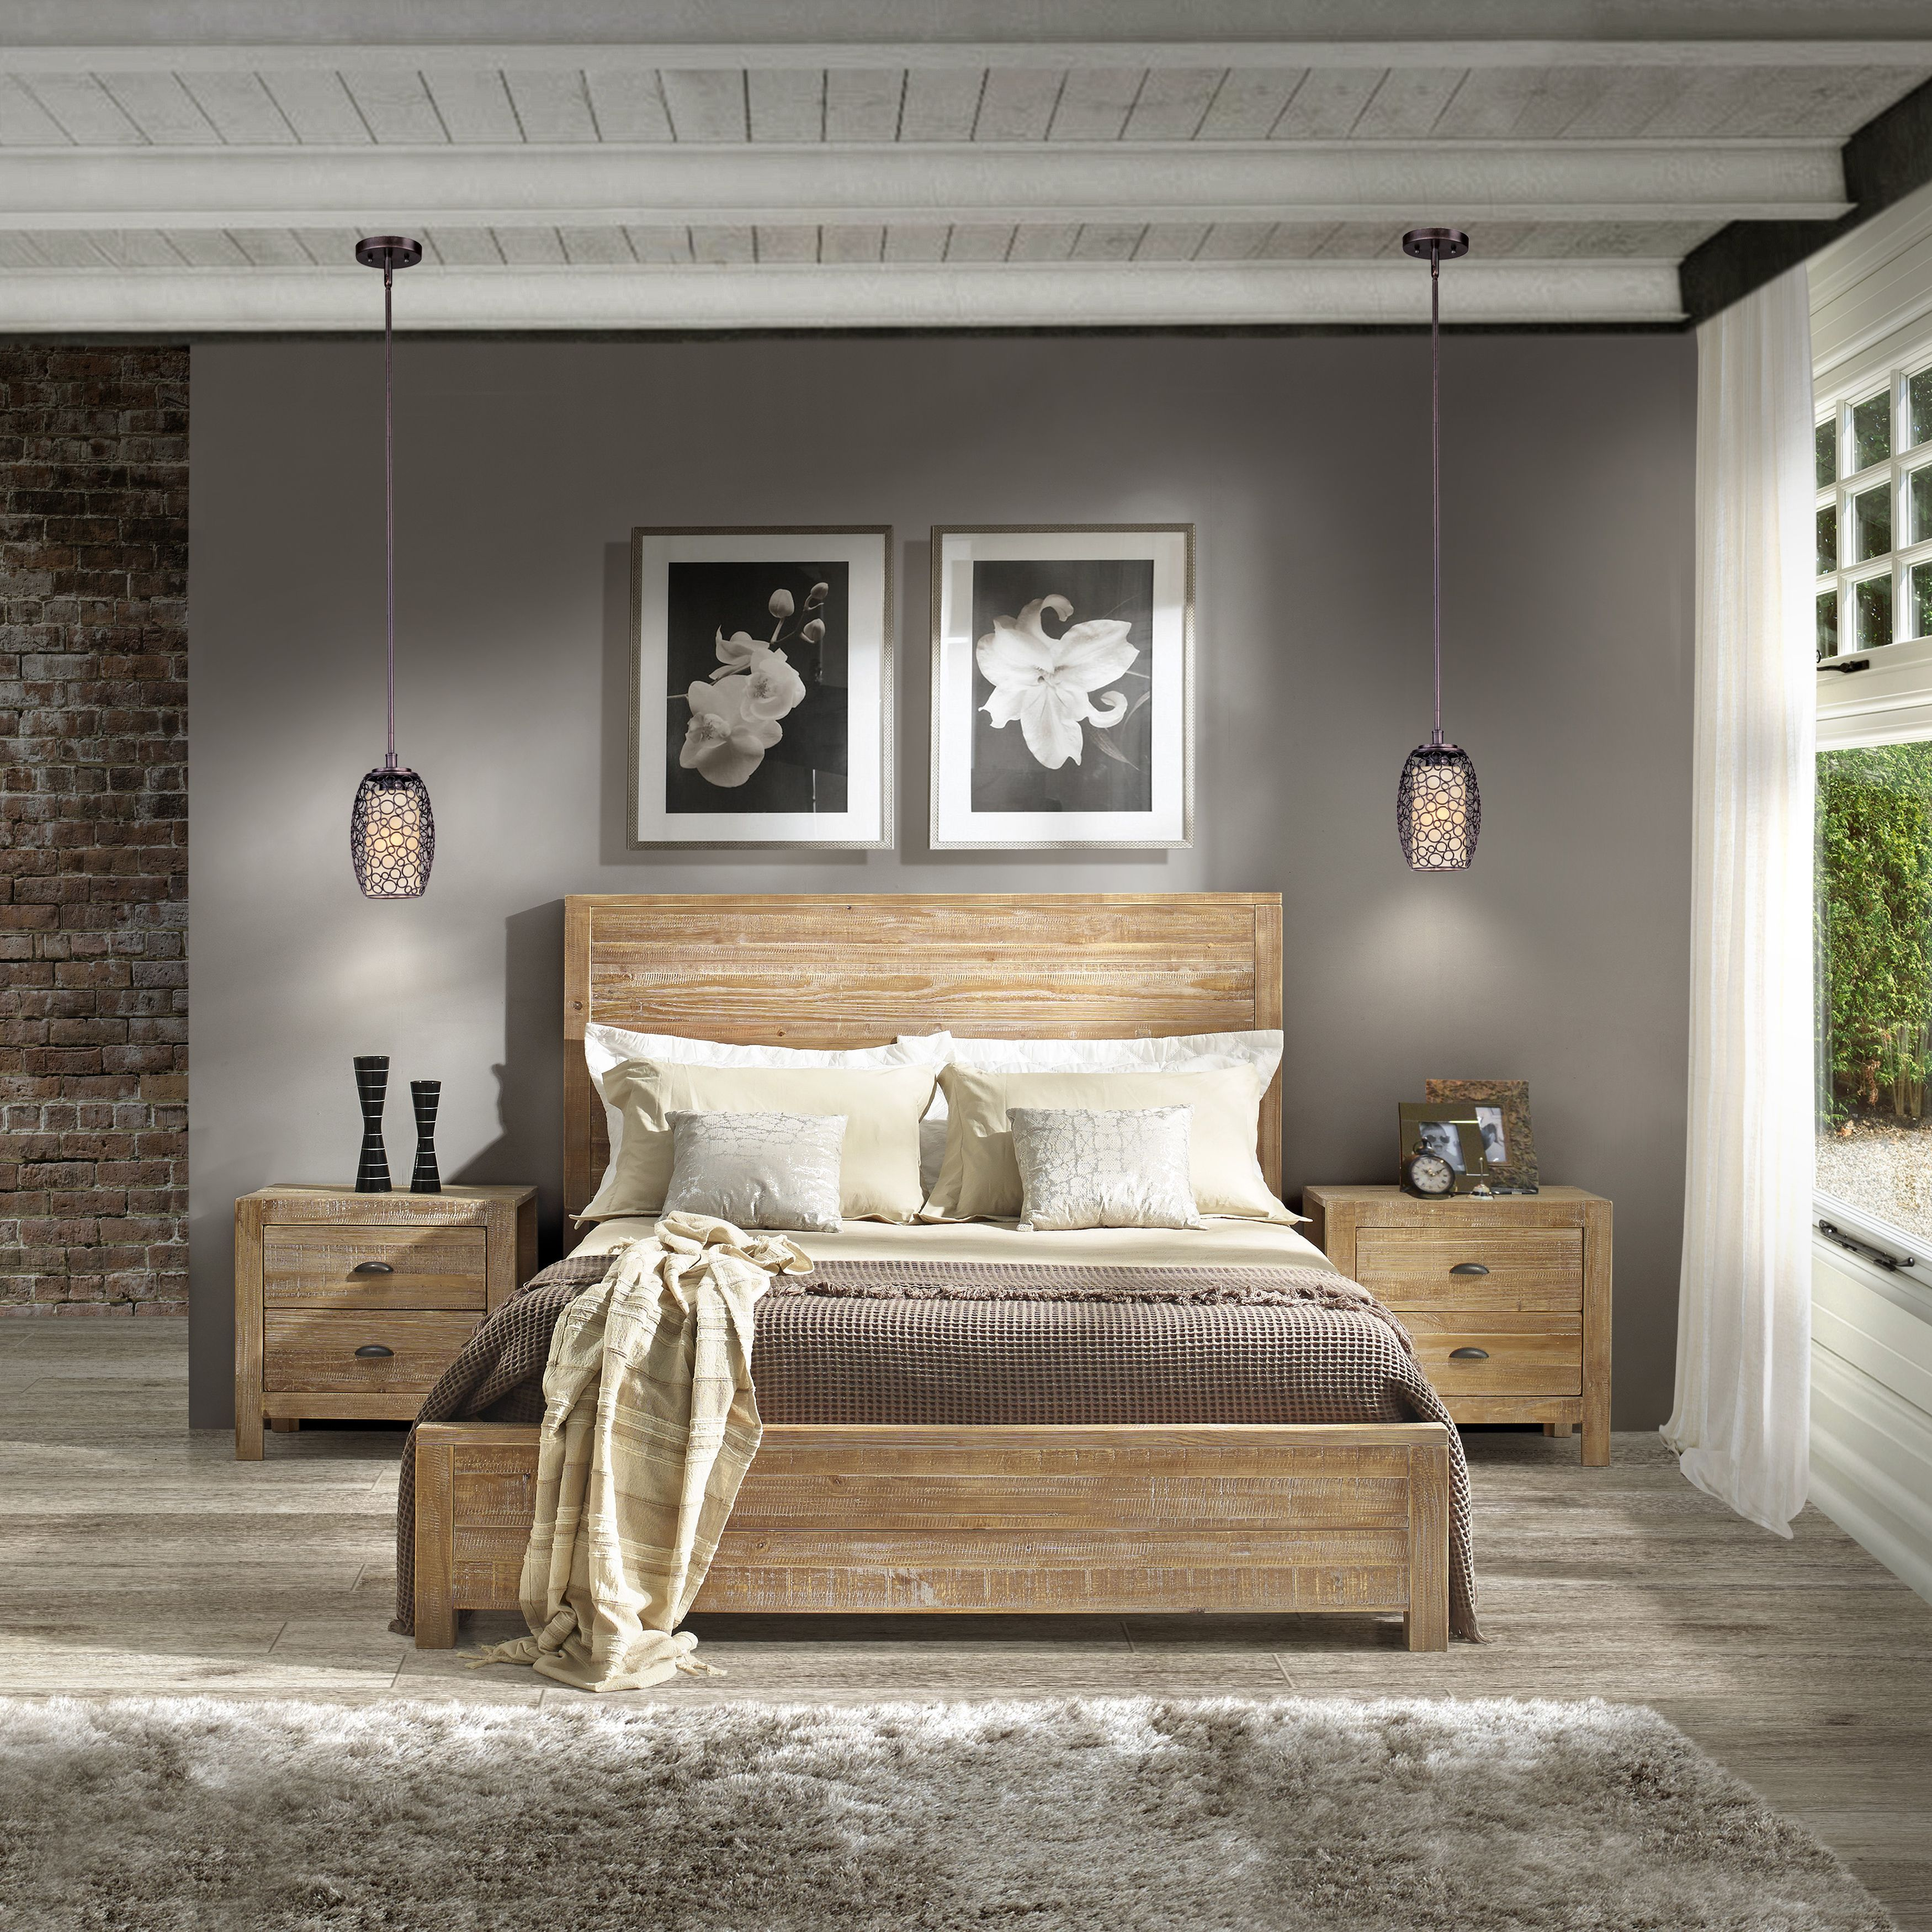 Rustic Wood Bedroom Furniture grain wood furniture montauk queen solid wood panel bed (rustic